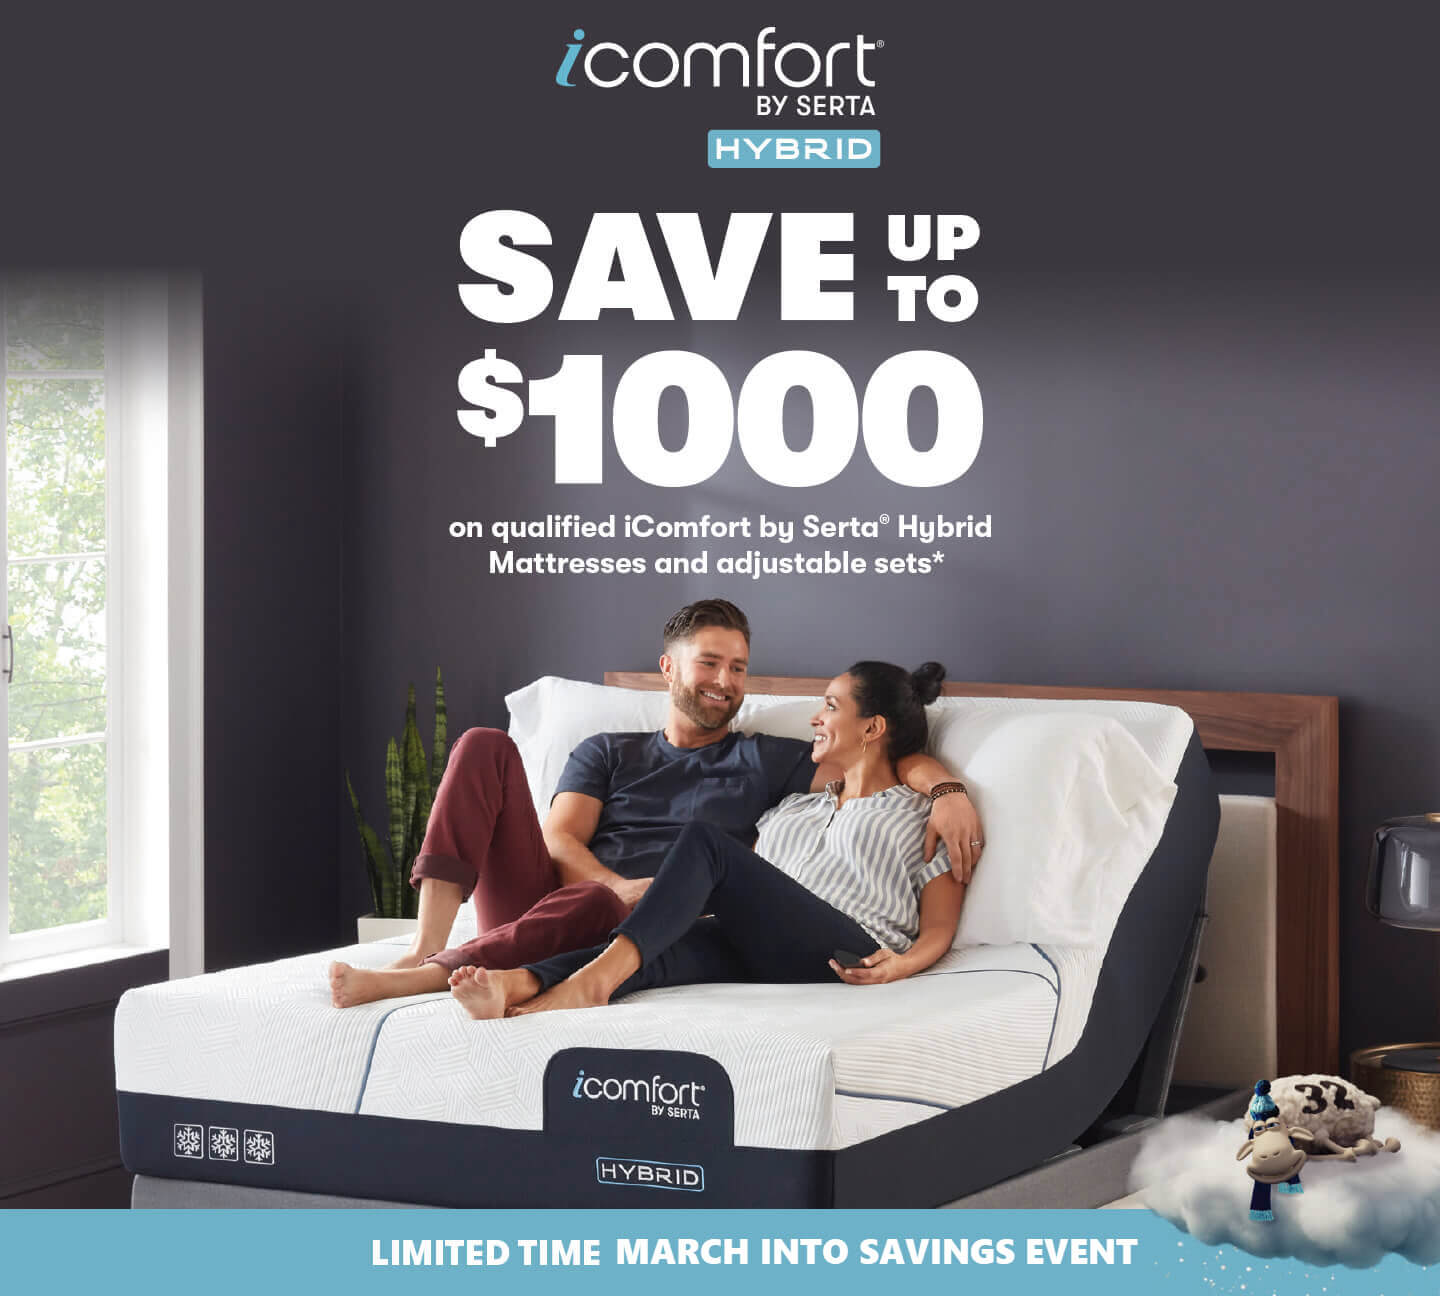 Serta iComfort Hybrid March to Savings Event